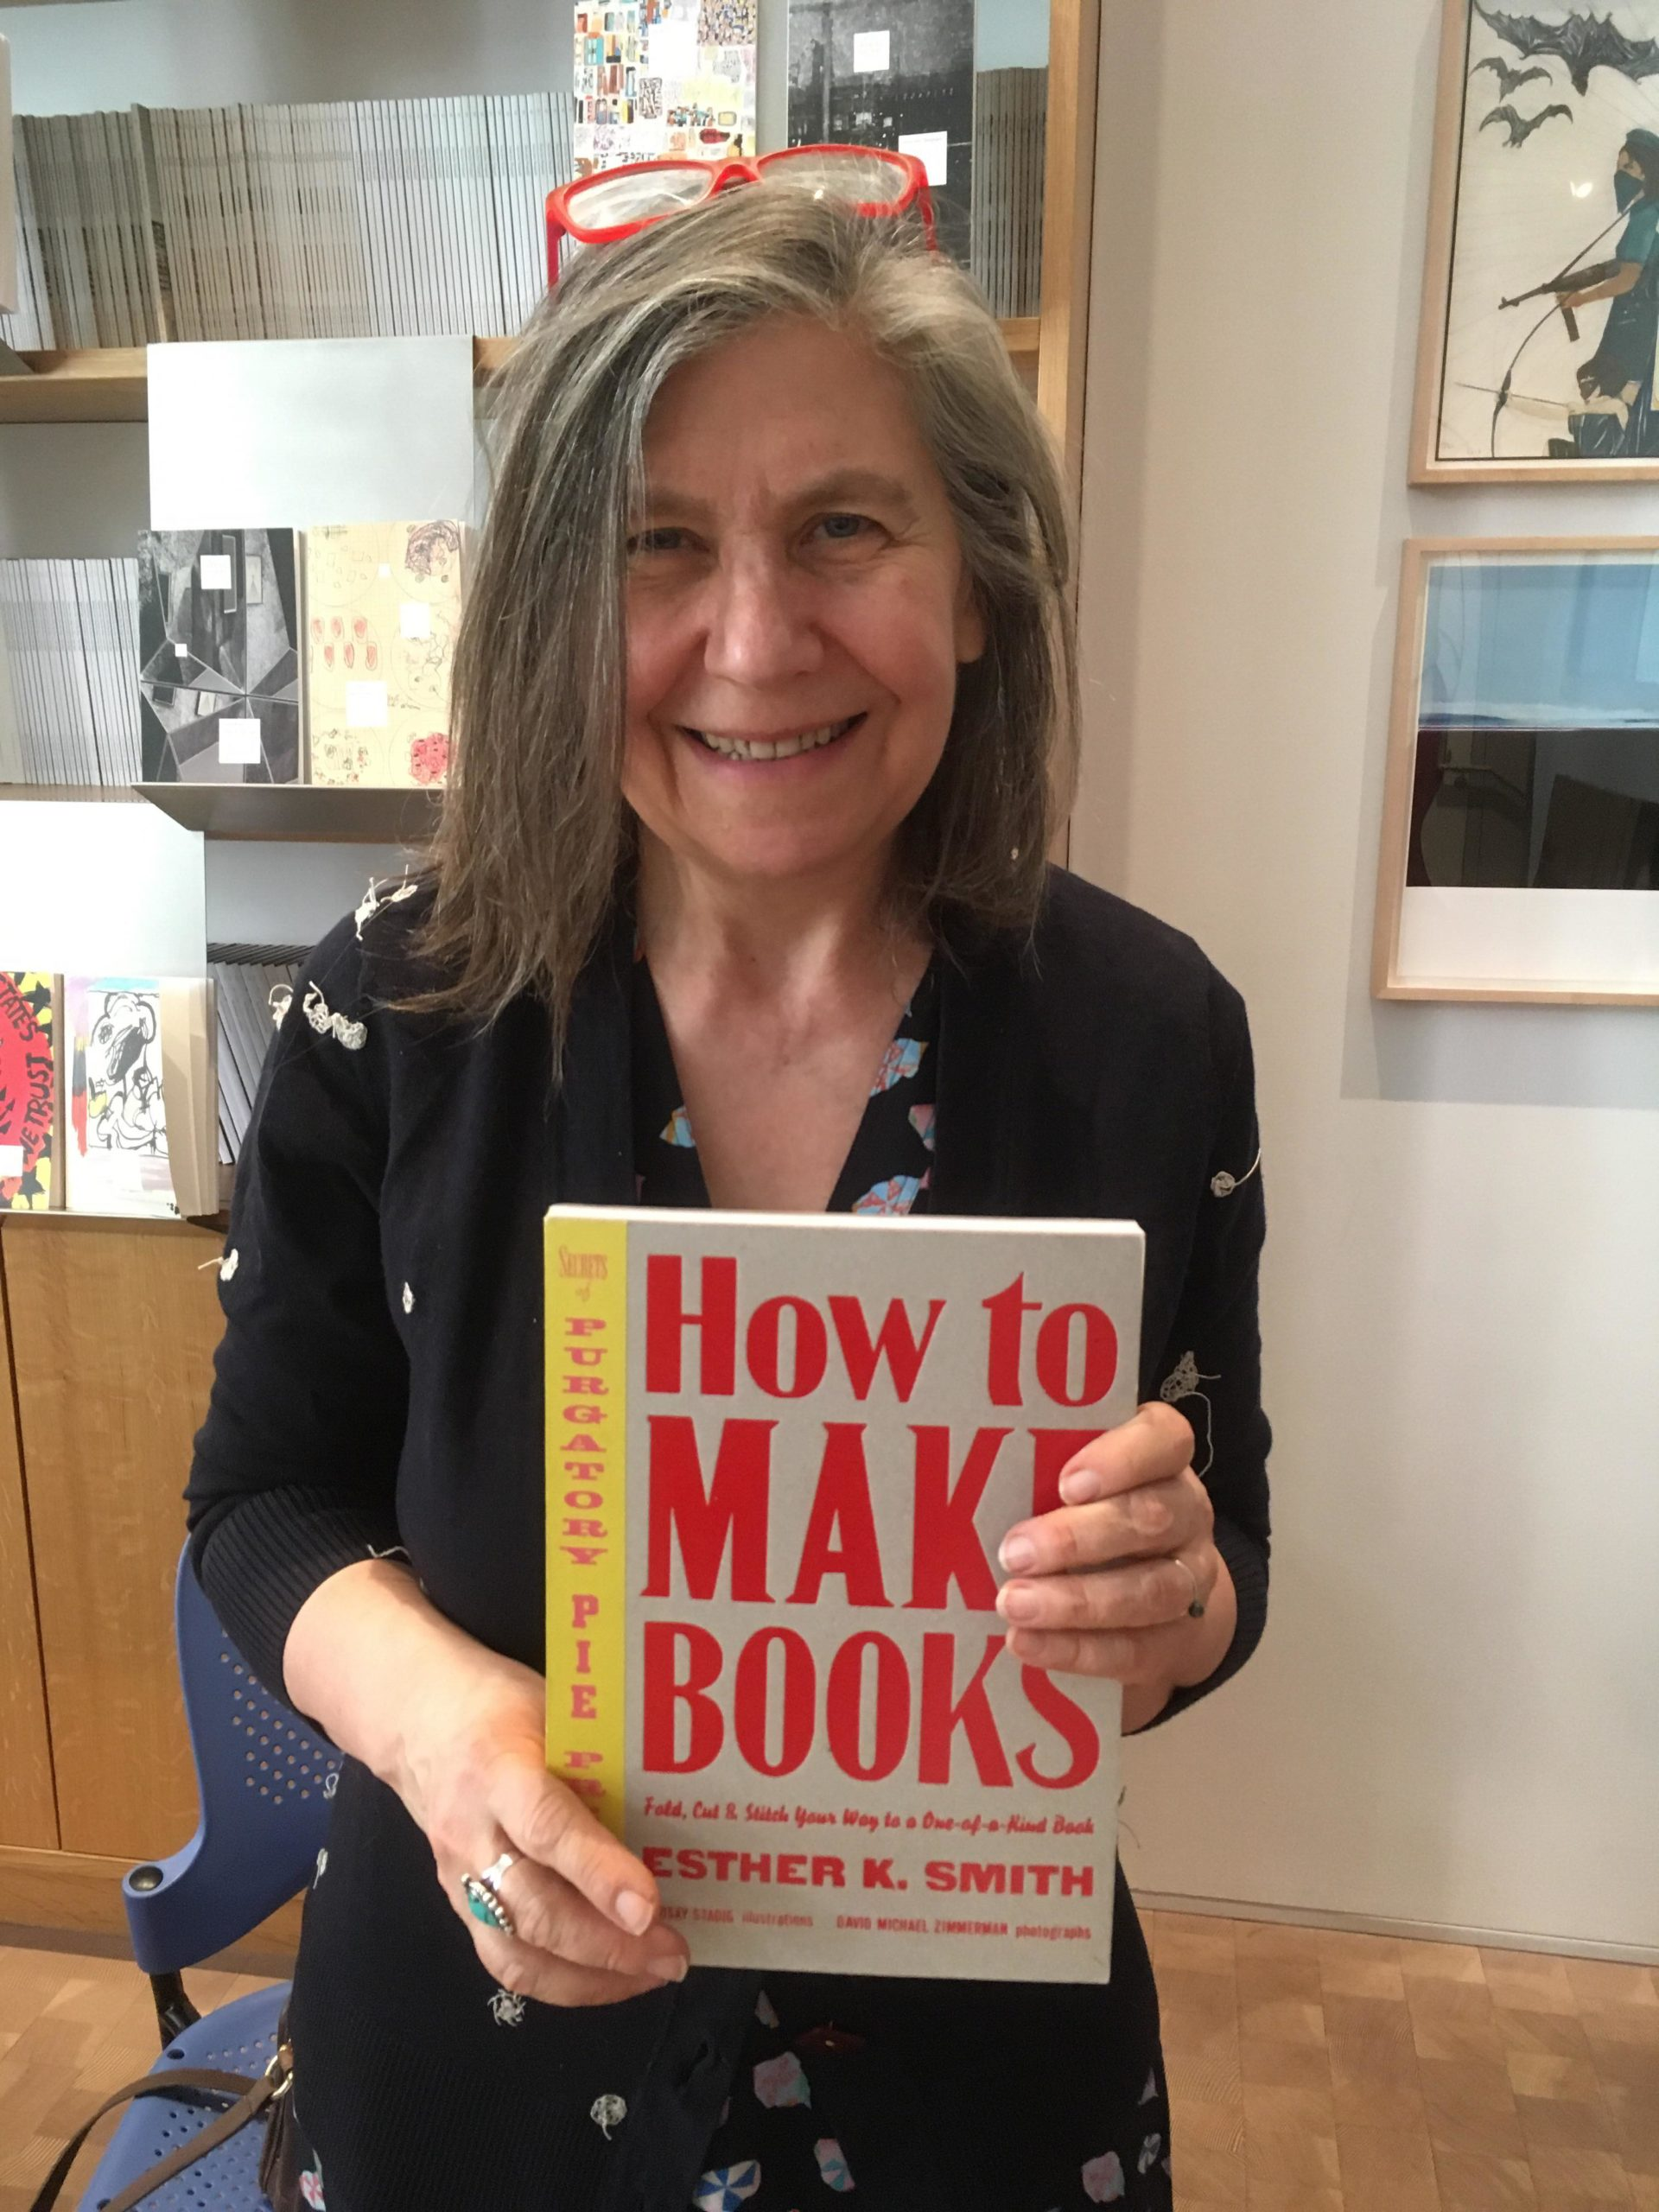 Esther Smith holding her book How to Make Books